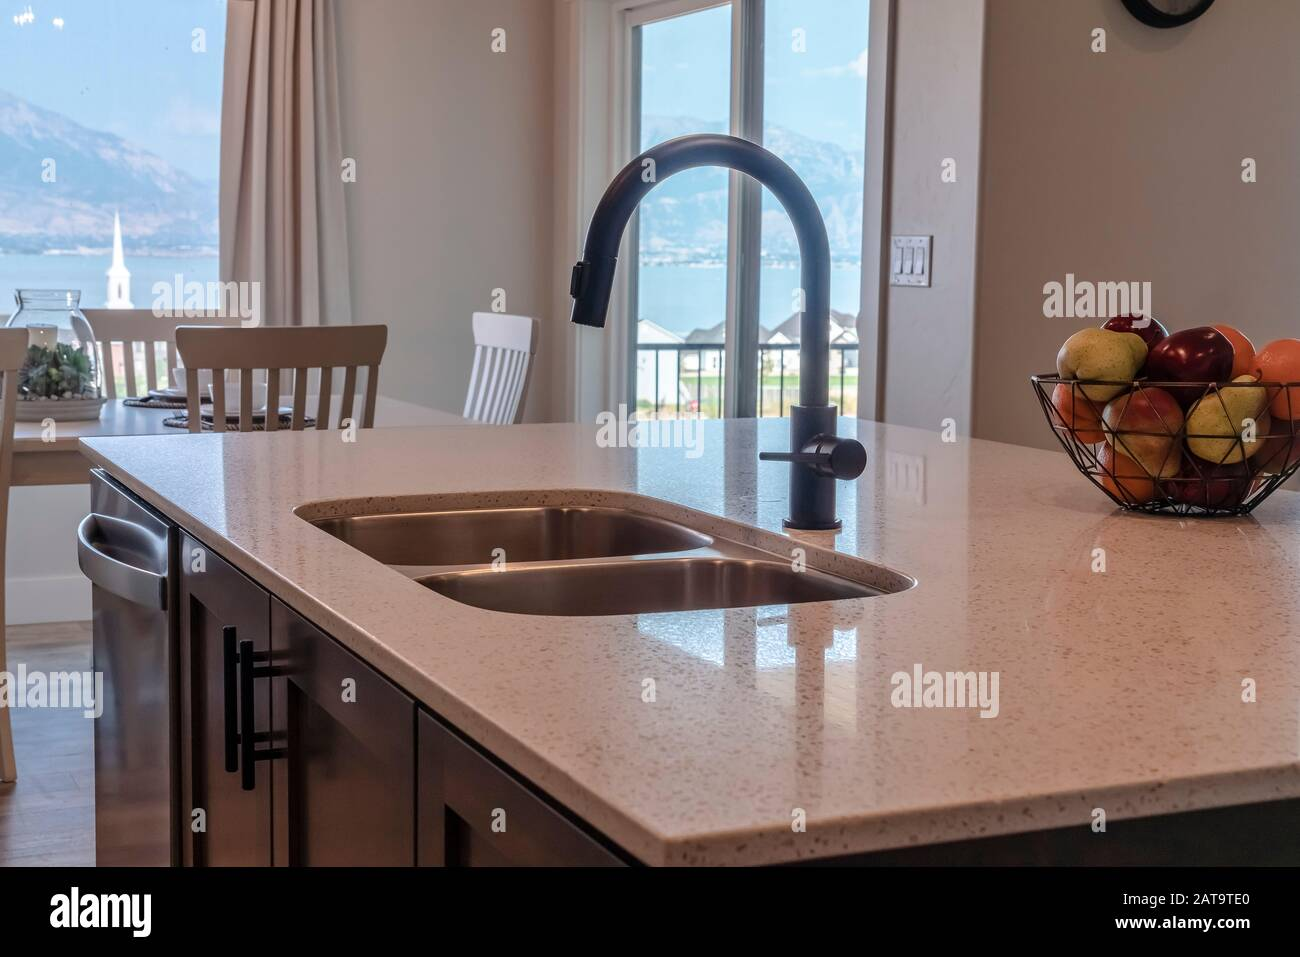 Kitchen Island With Double Basin Undermount Sink Black Faucet And Dishwasher Stock Photo Alamy